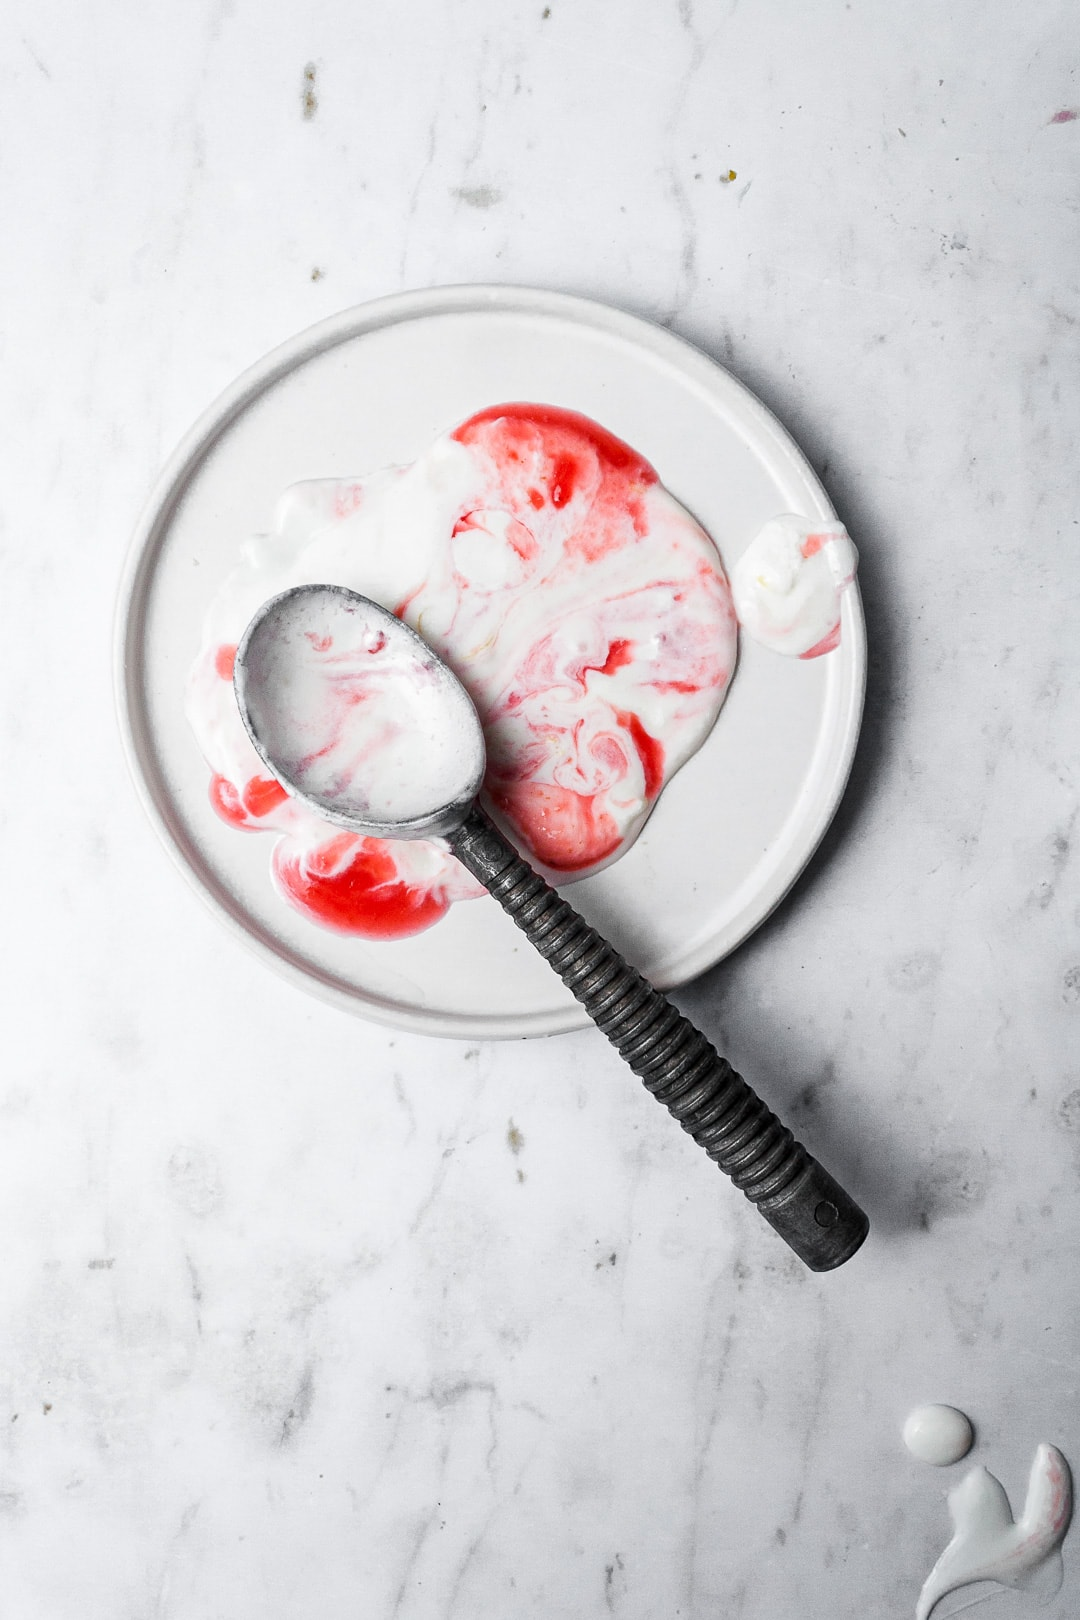 Melted puddle of marbled red and white ice cream on a white plate with a vintage ice cream scoop on top